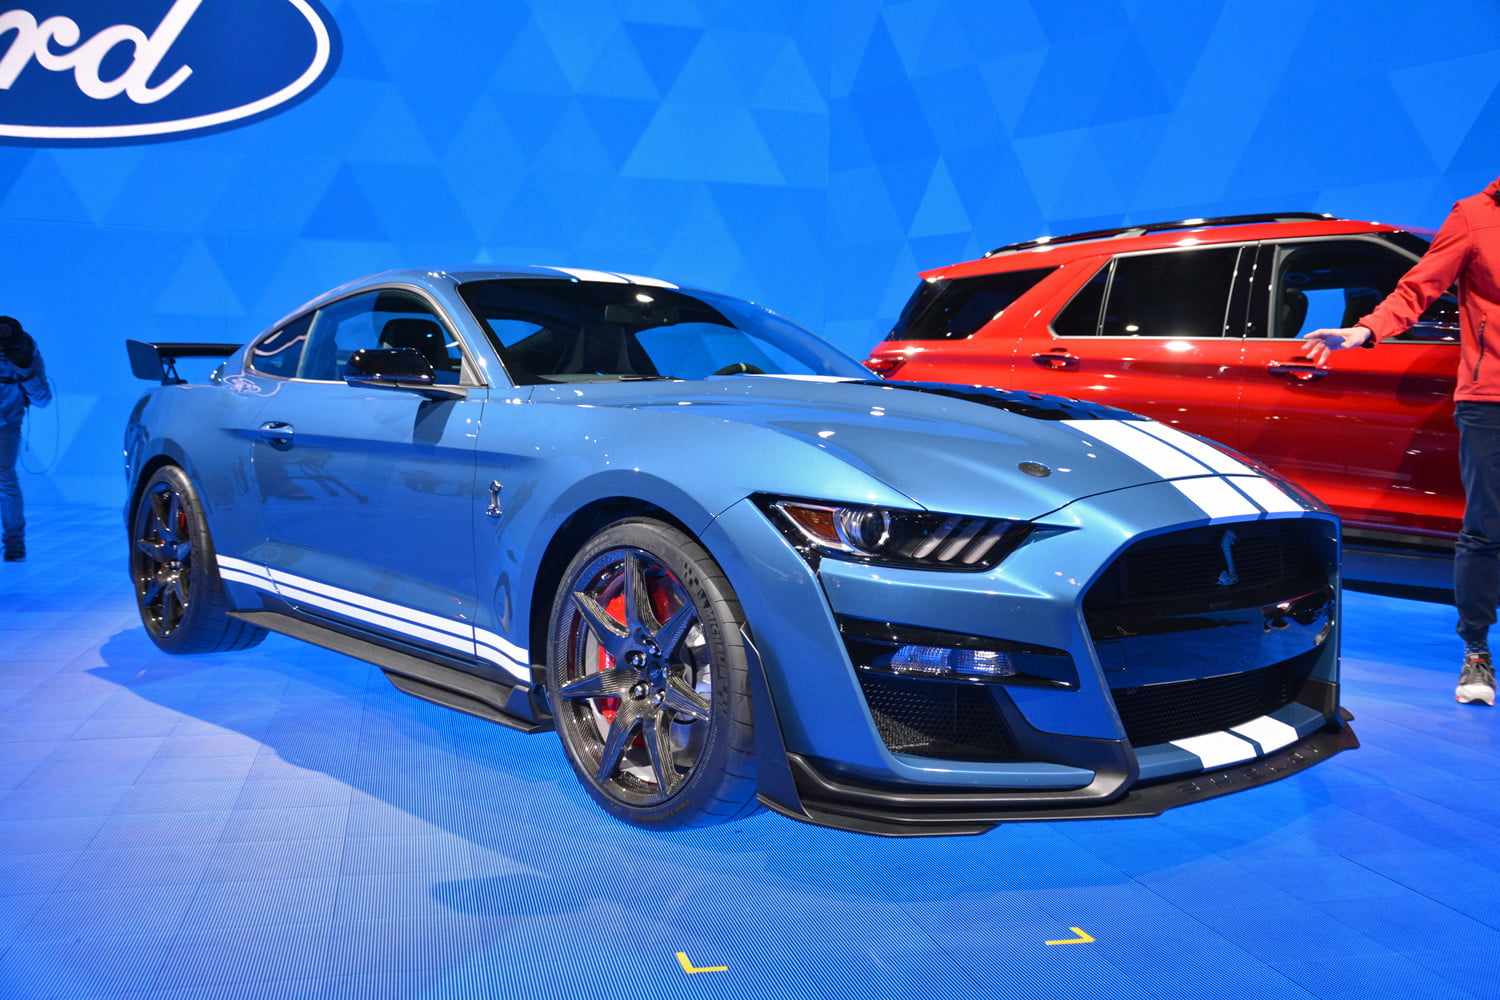 2020 ford mustang shelby gt500 is ready to strike with over 700 hp